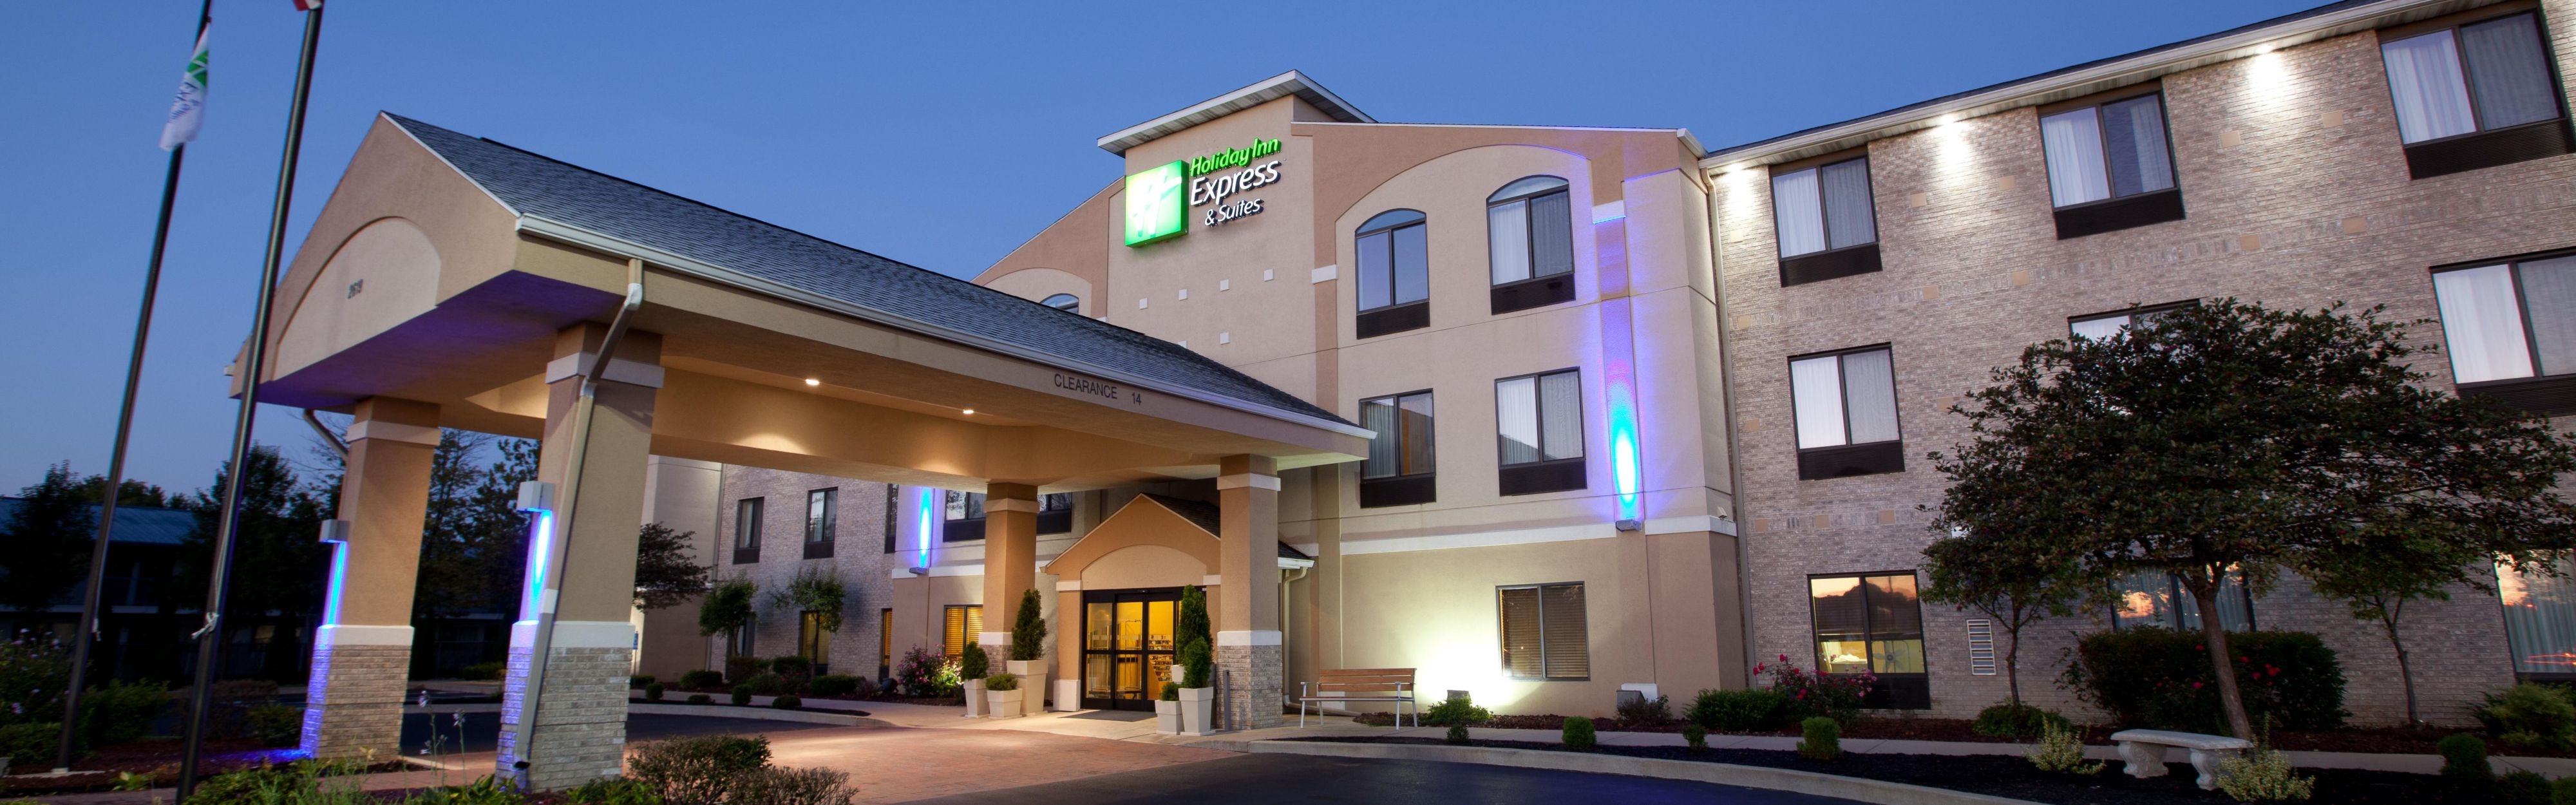 Simple Hotel Exterior With Hotels Near Plymouth Nh